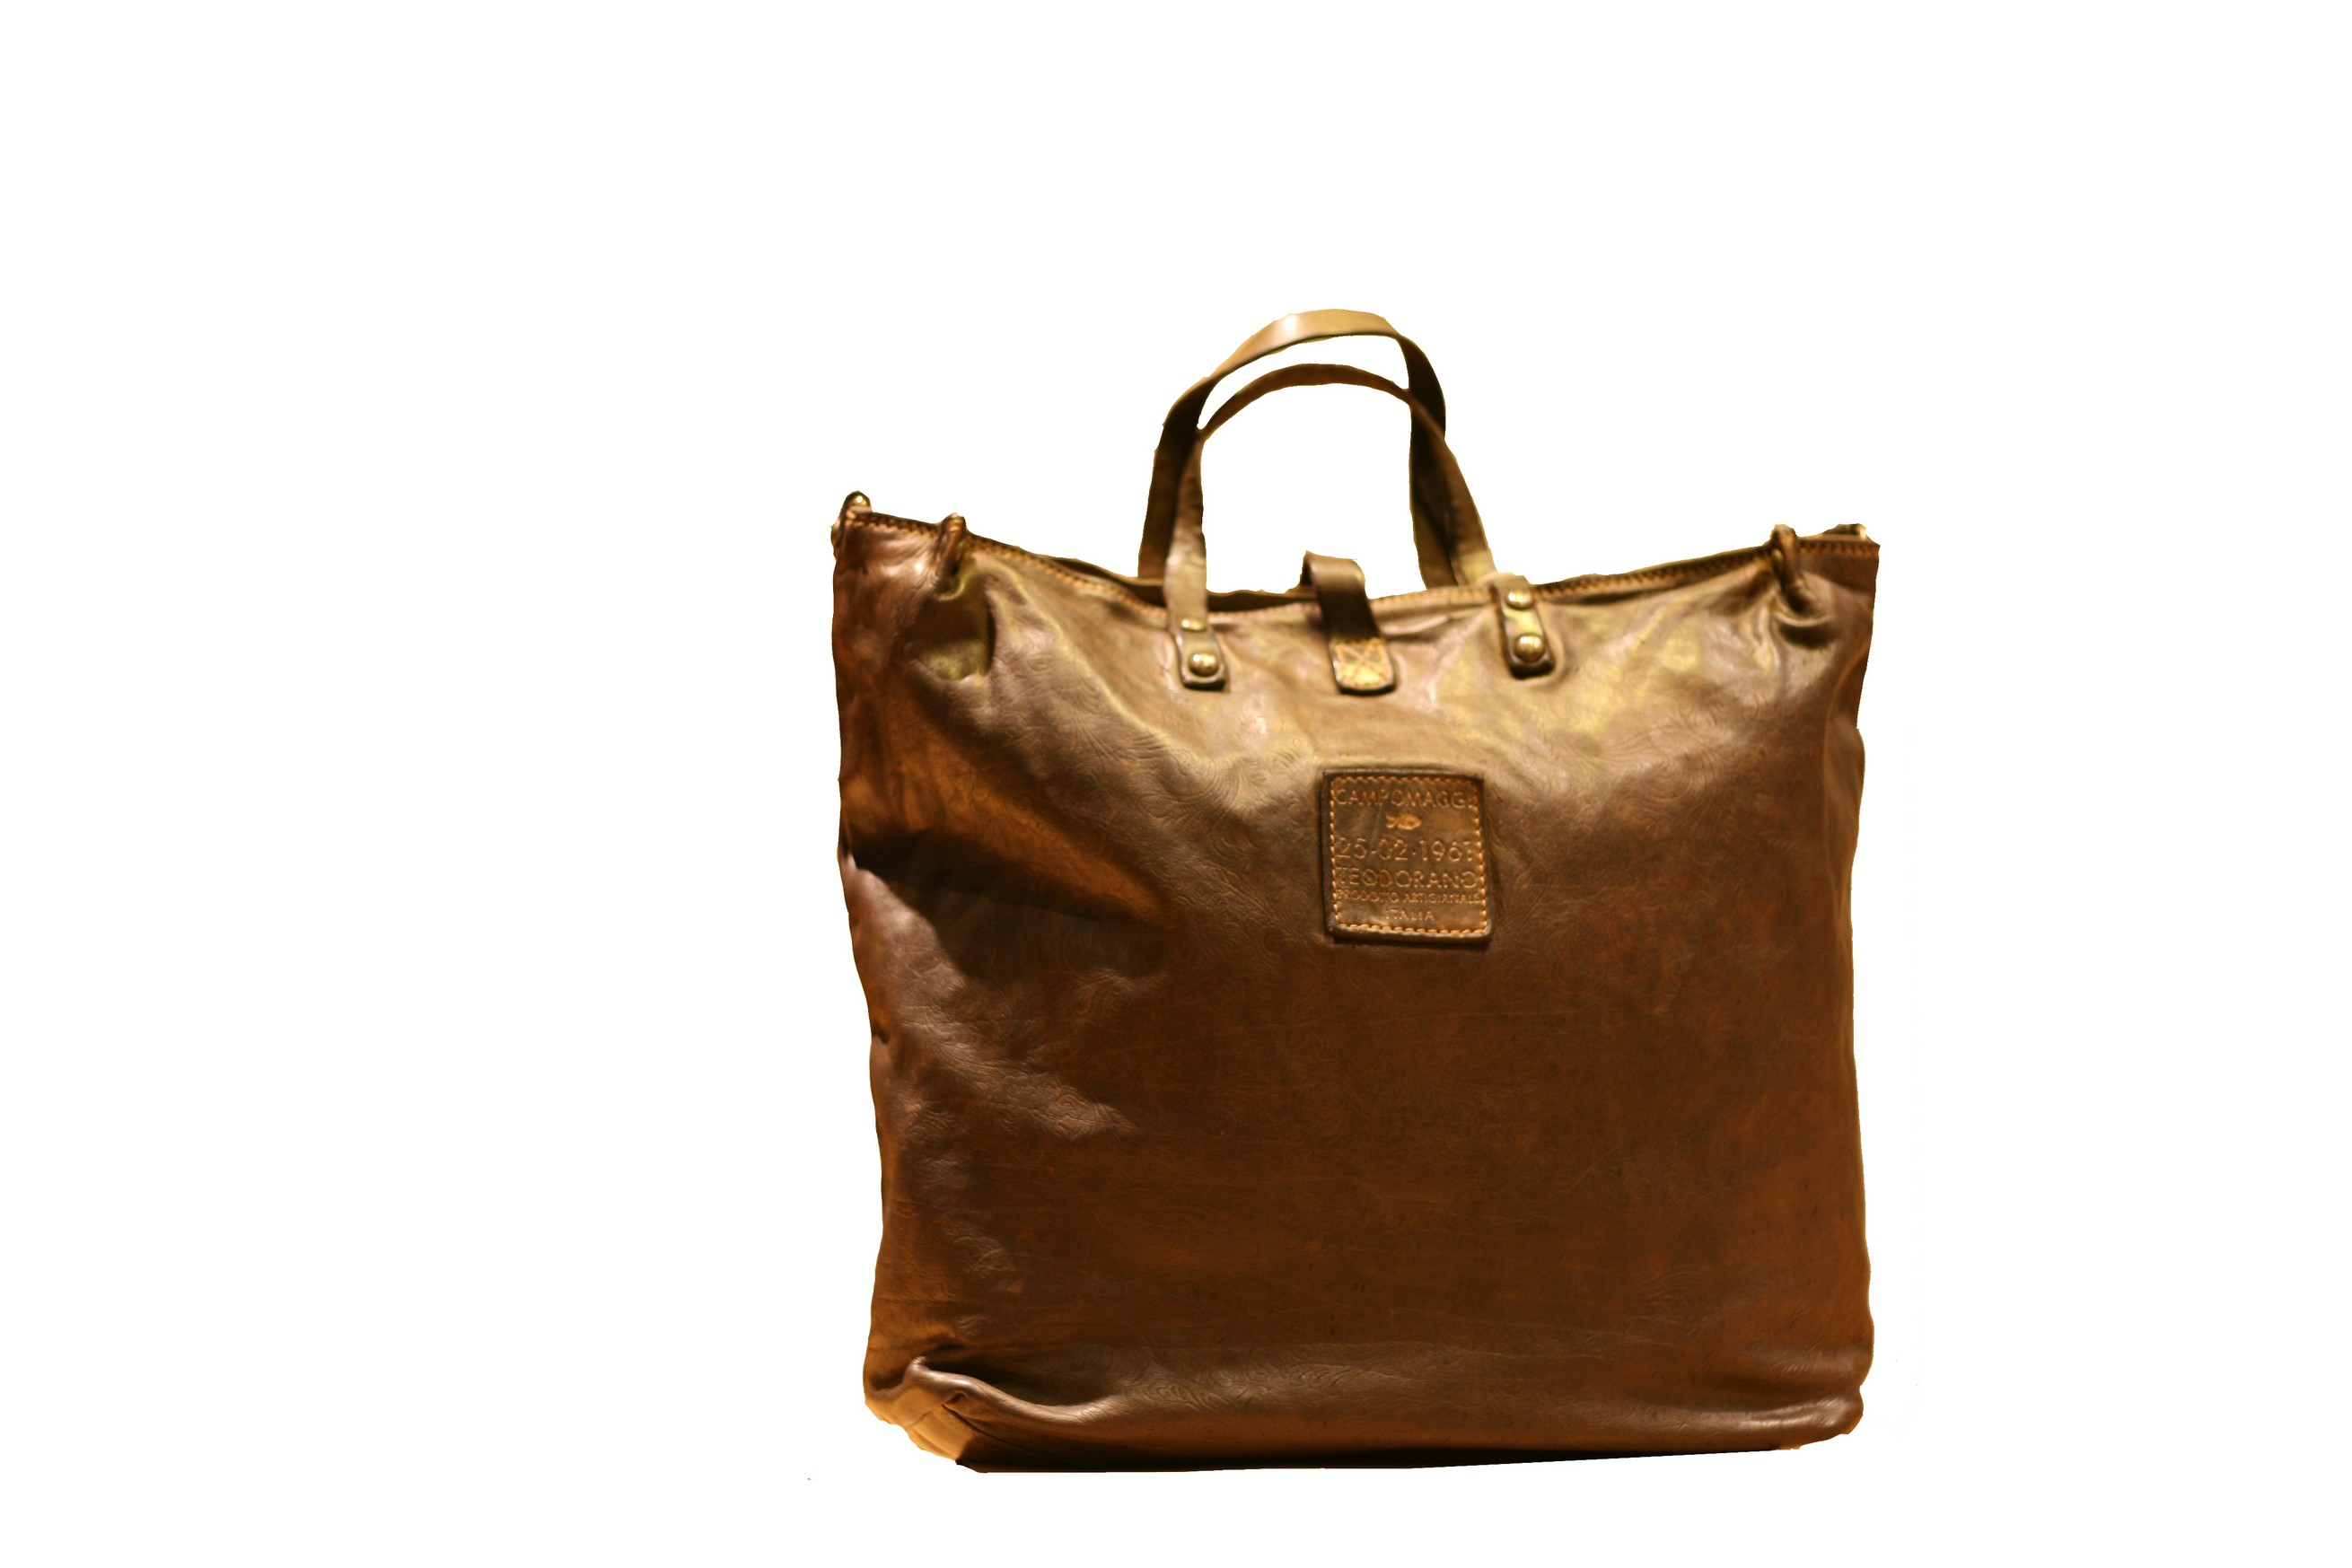 Campomaggi 1263 Moro Shopping Bag